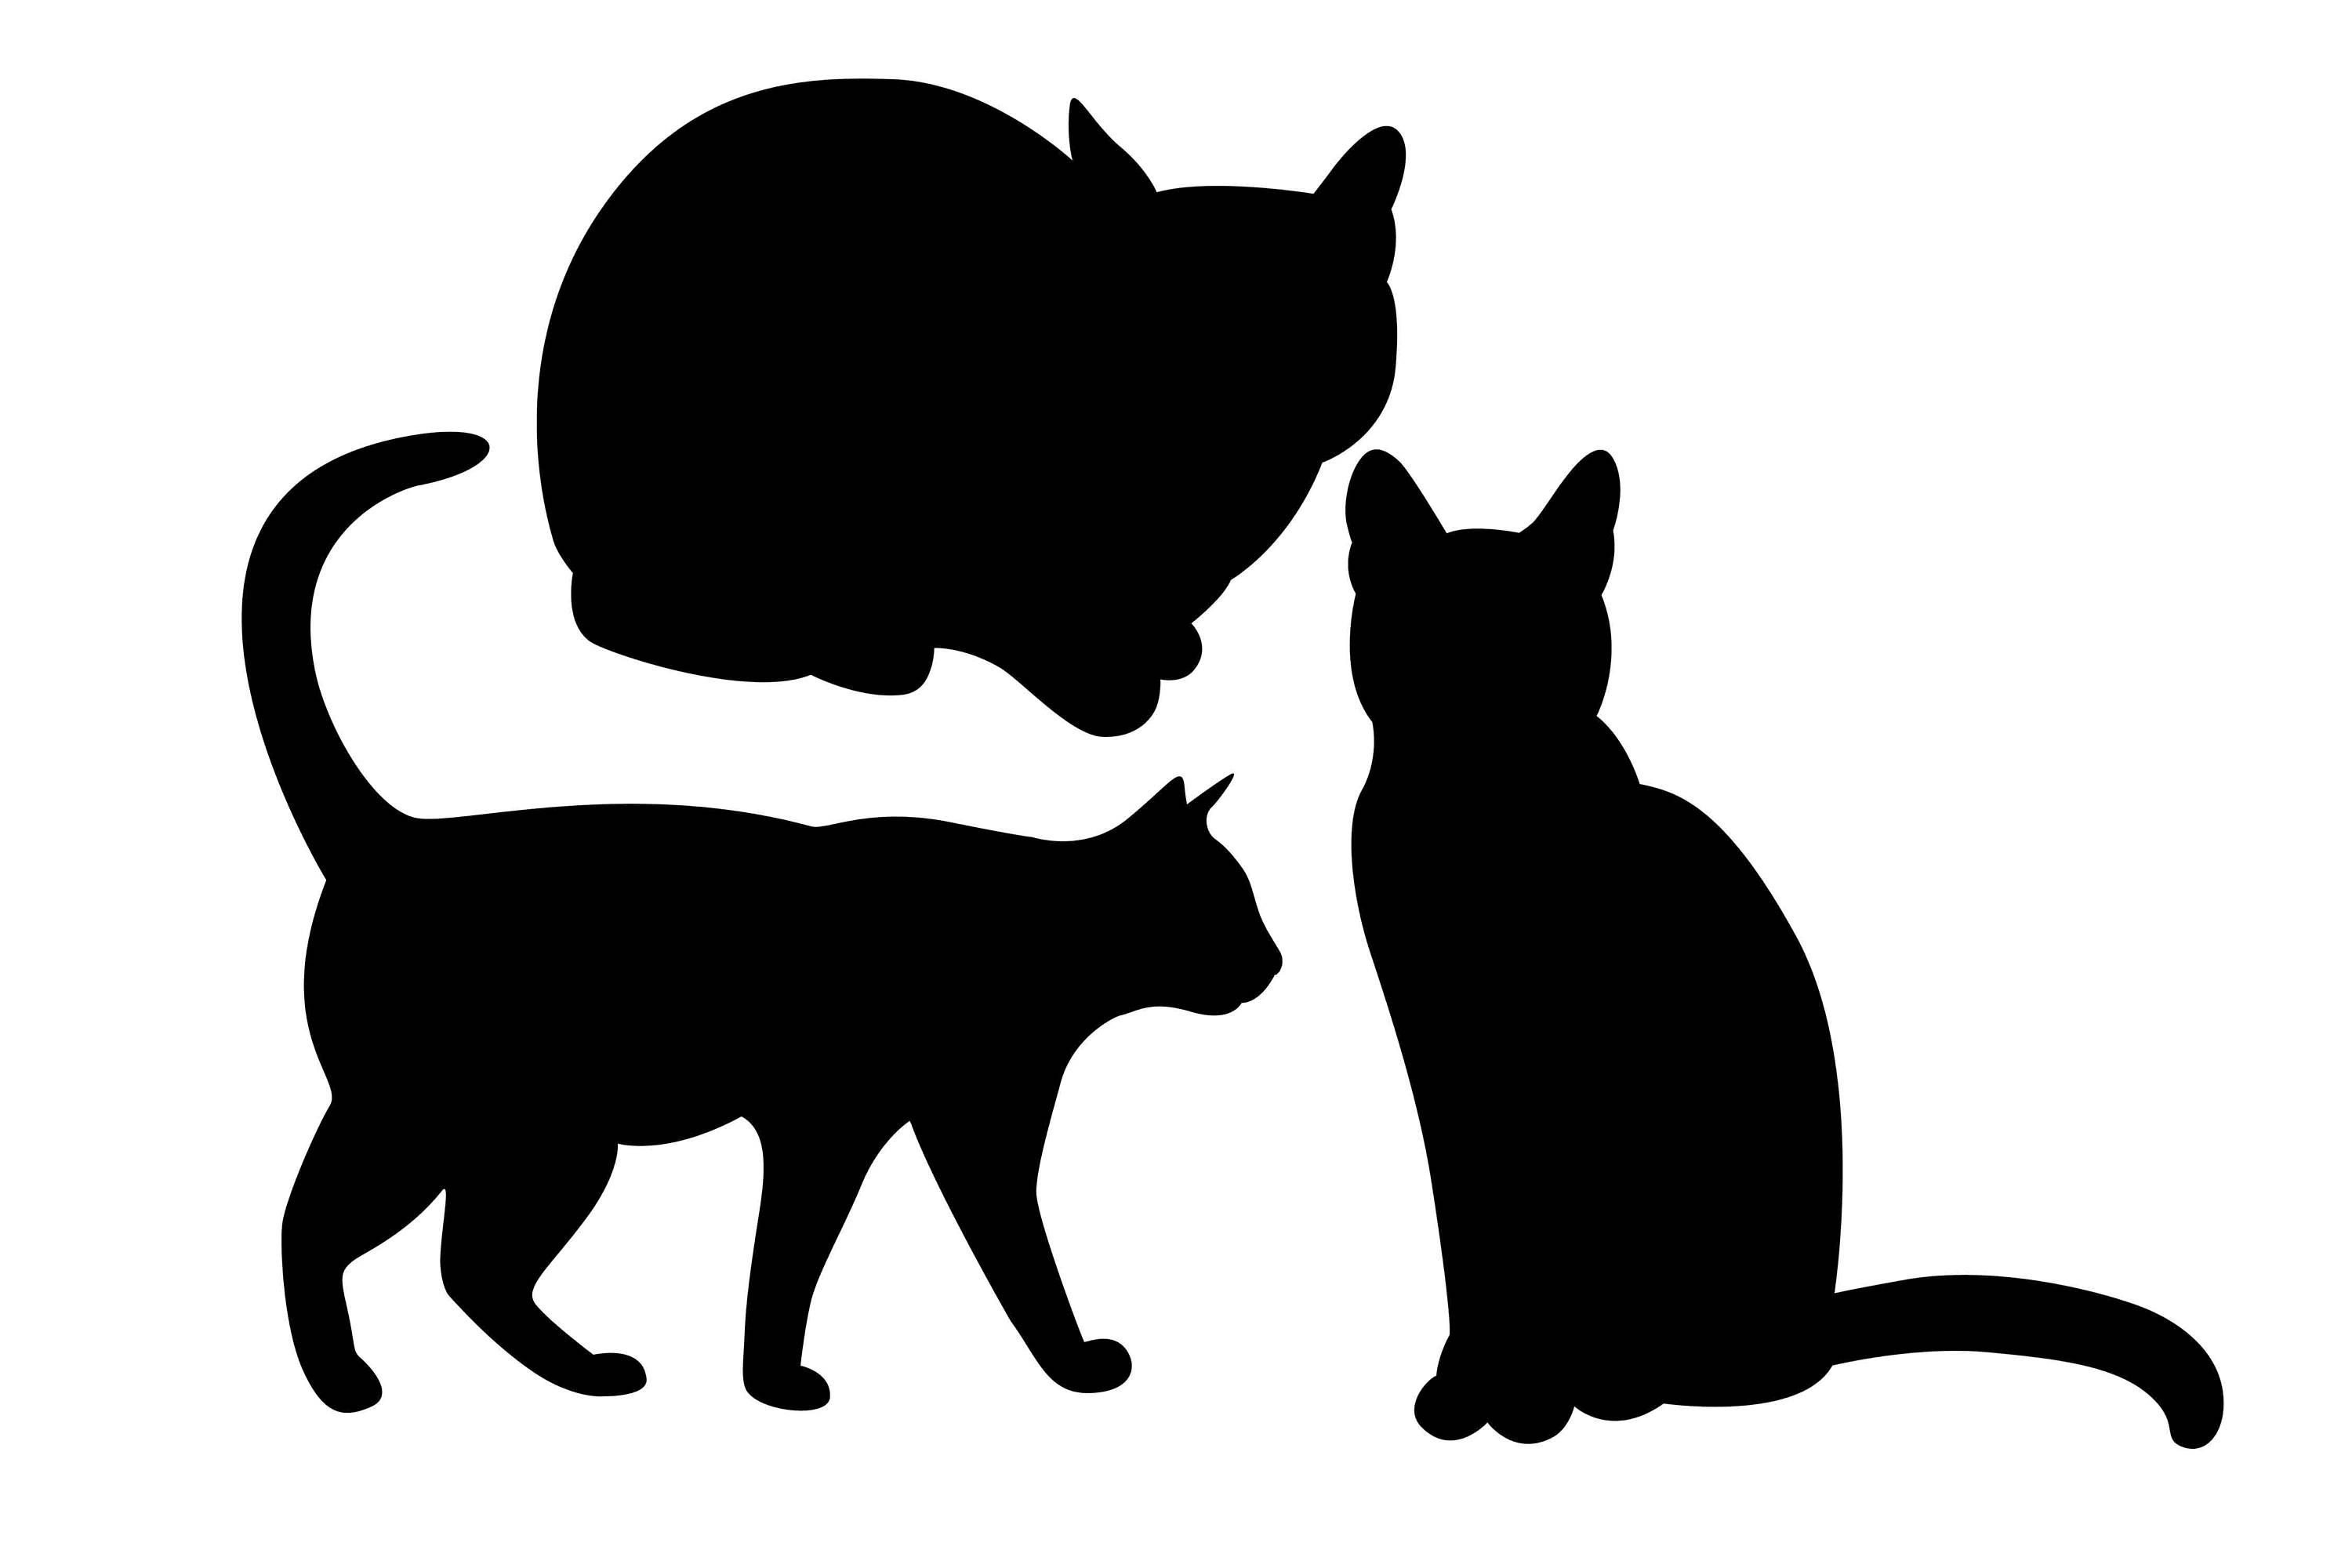 Cats clipart art. Cat silhouette clip at